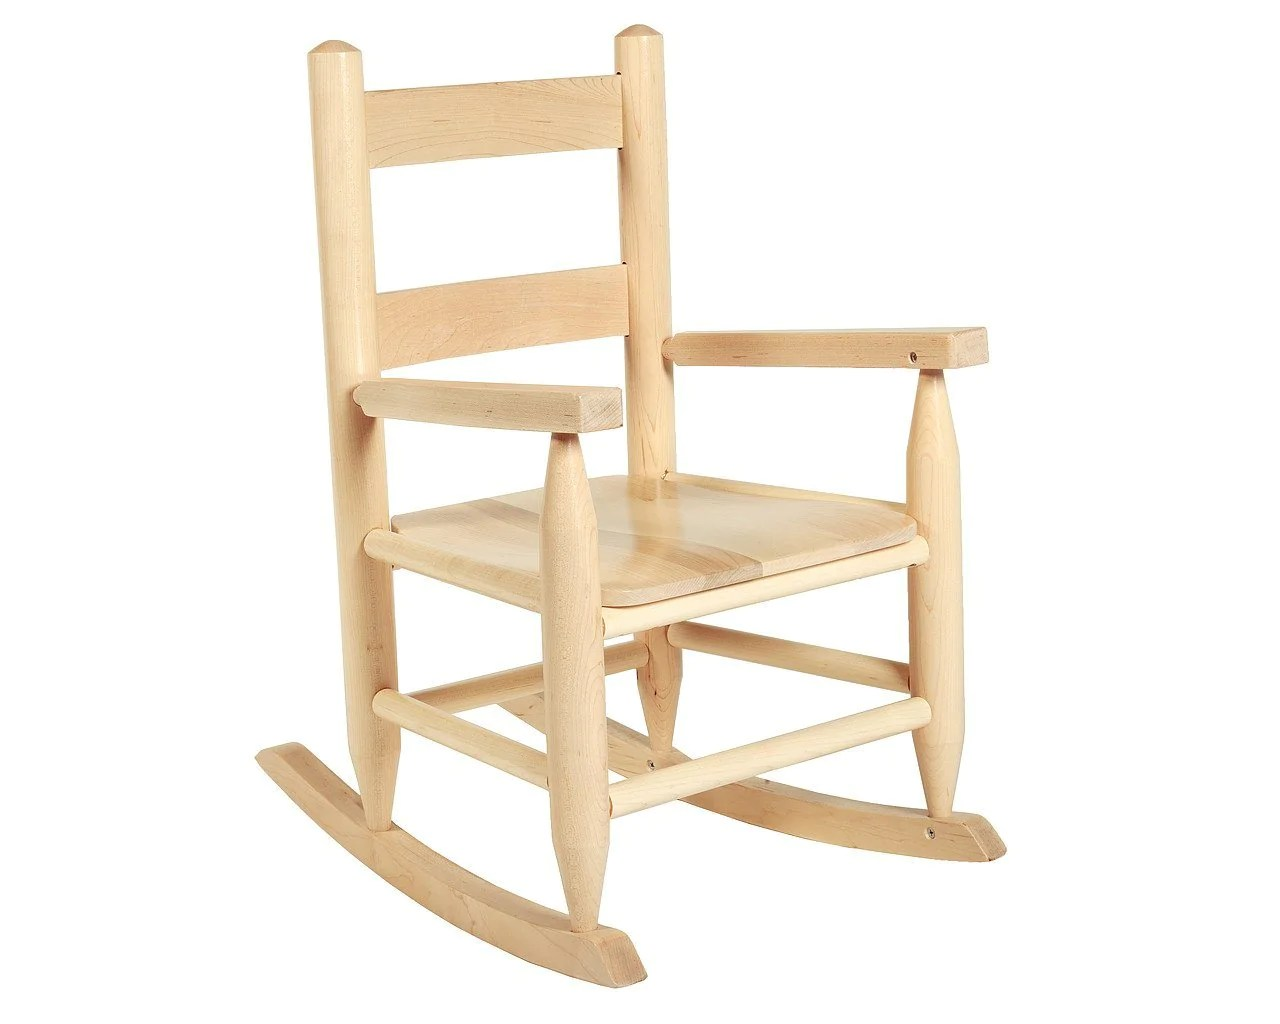 Child Wooden Rocking Chair Child Sized Rocking Chair By Community Playthings